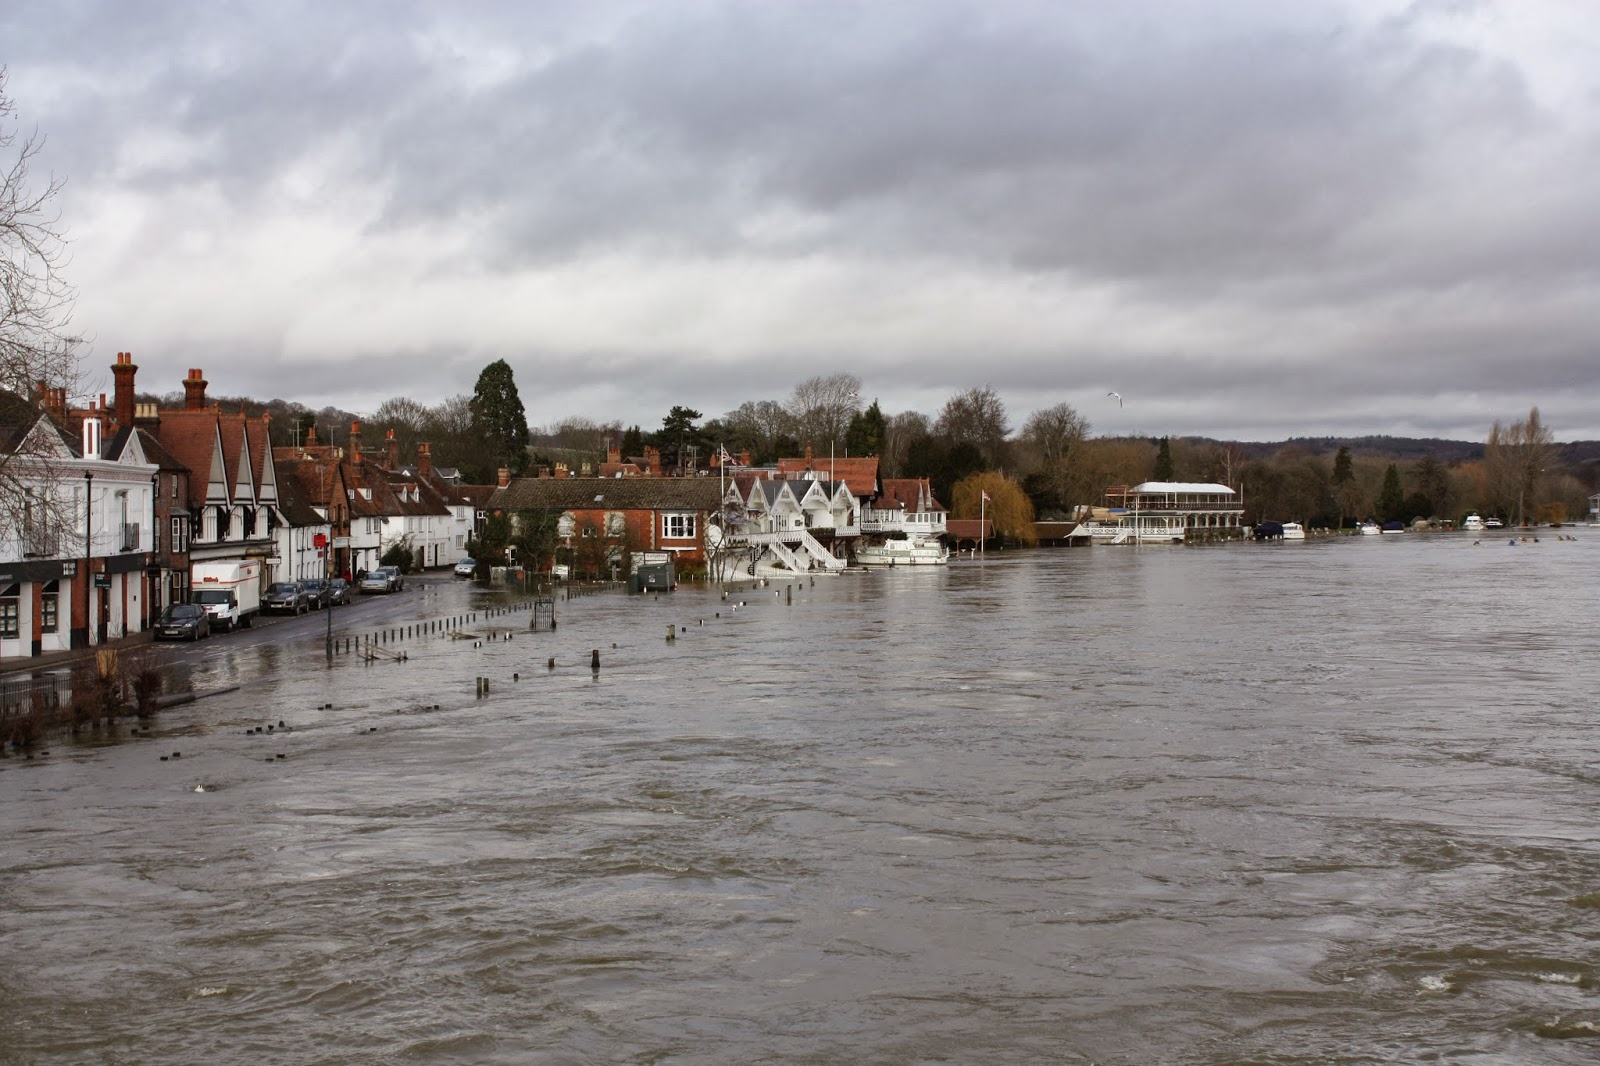 Flooded Regatta course in Henley on Thames